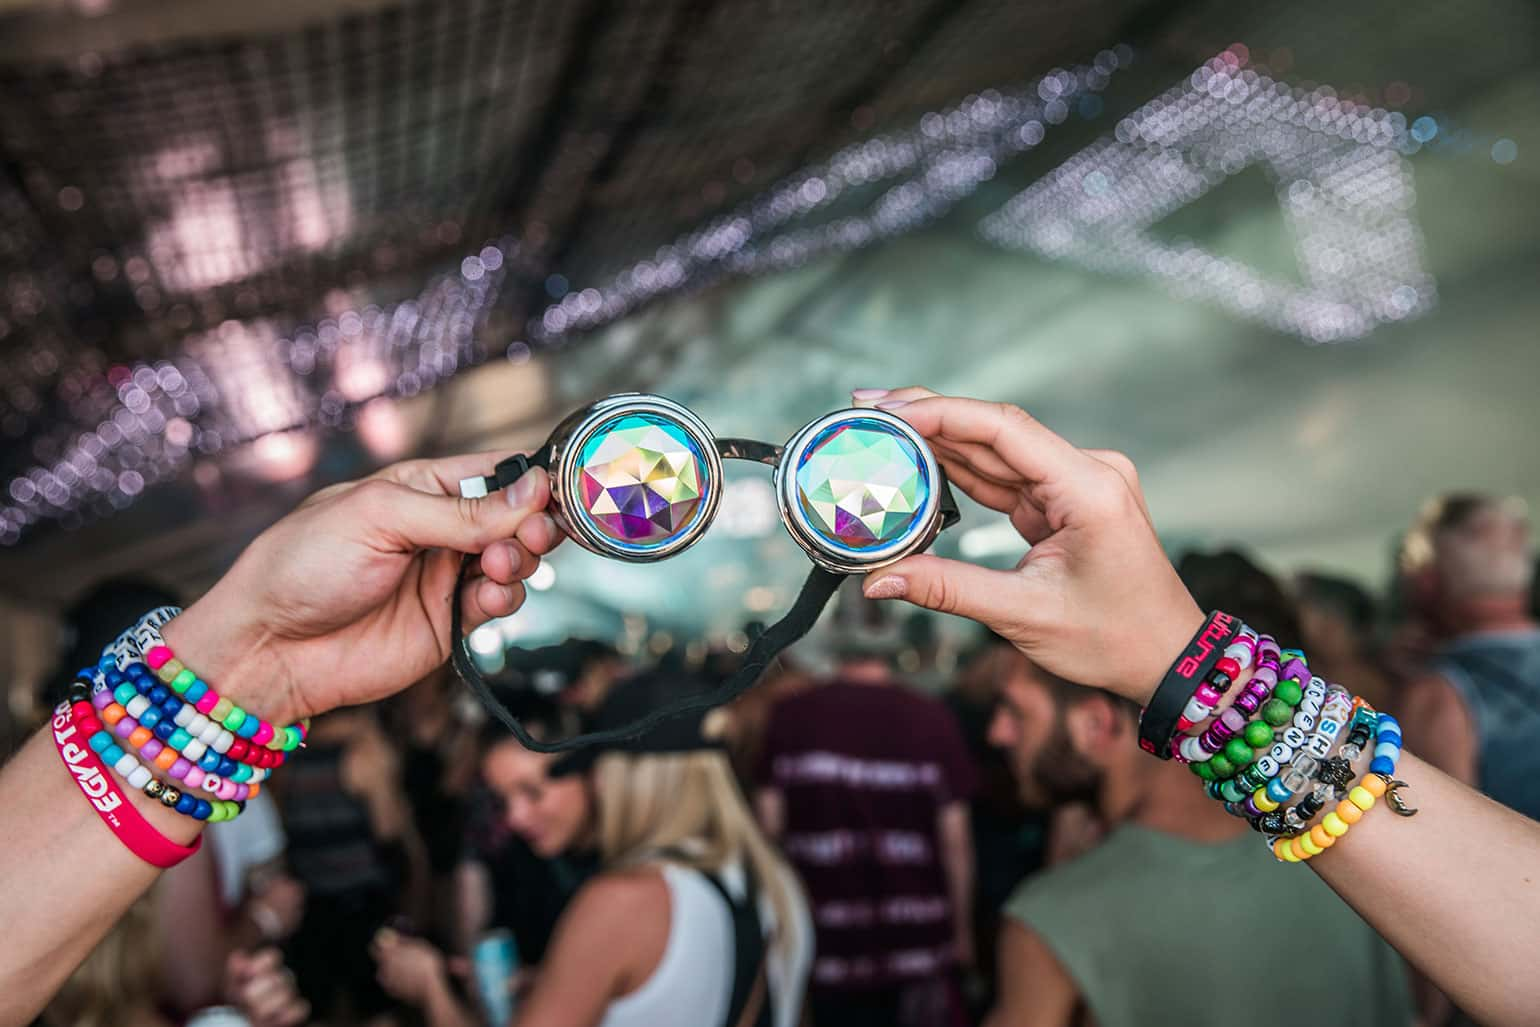 Concert-going couple with festival wristbands holding a pair of prismatic sunglasses.